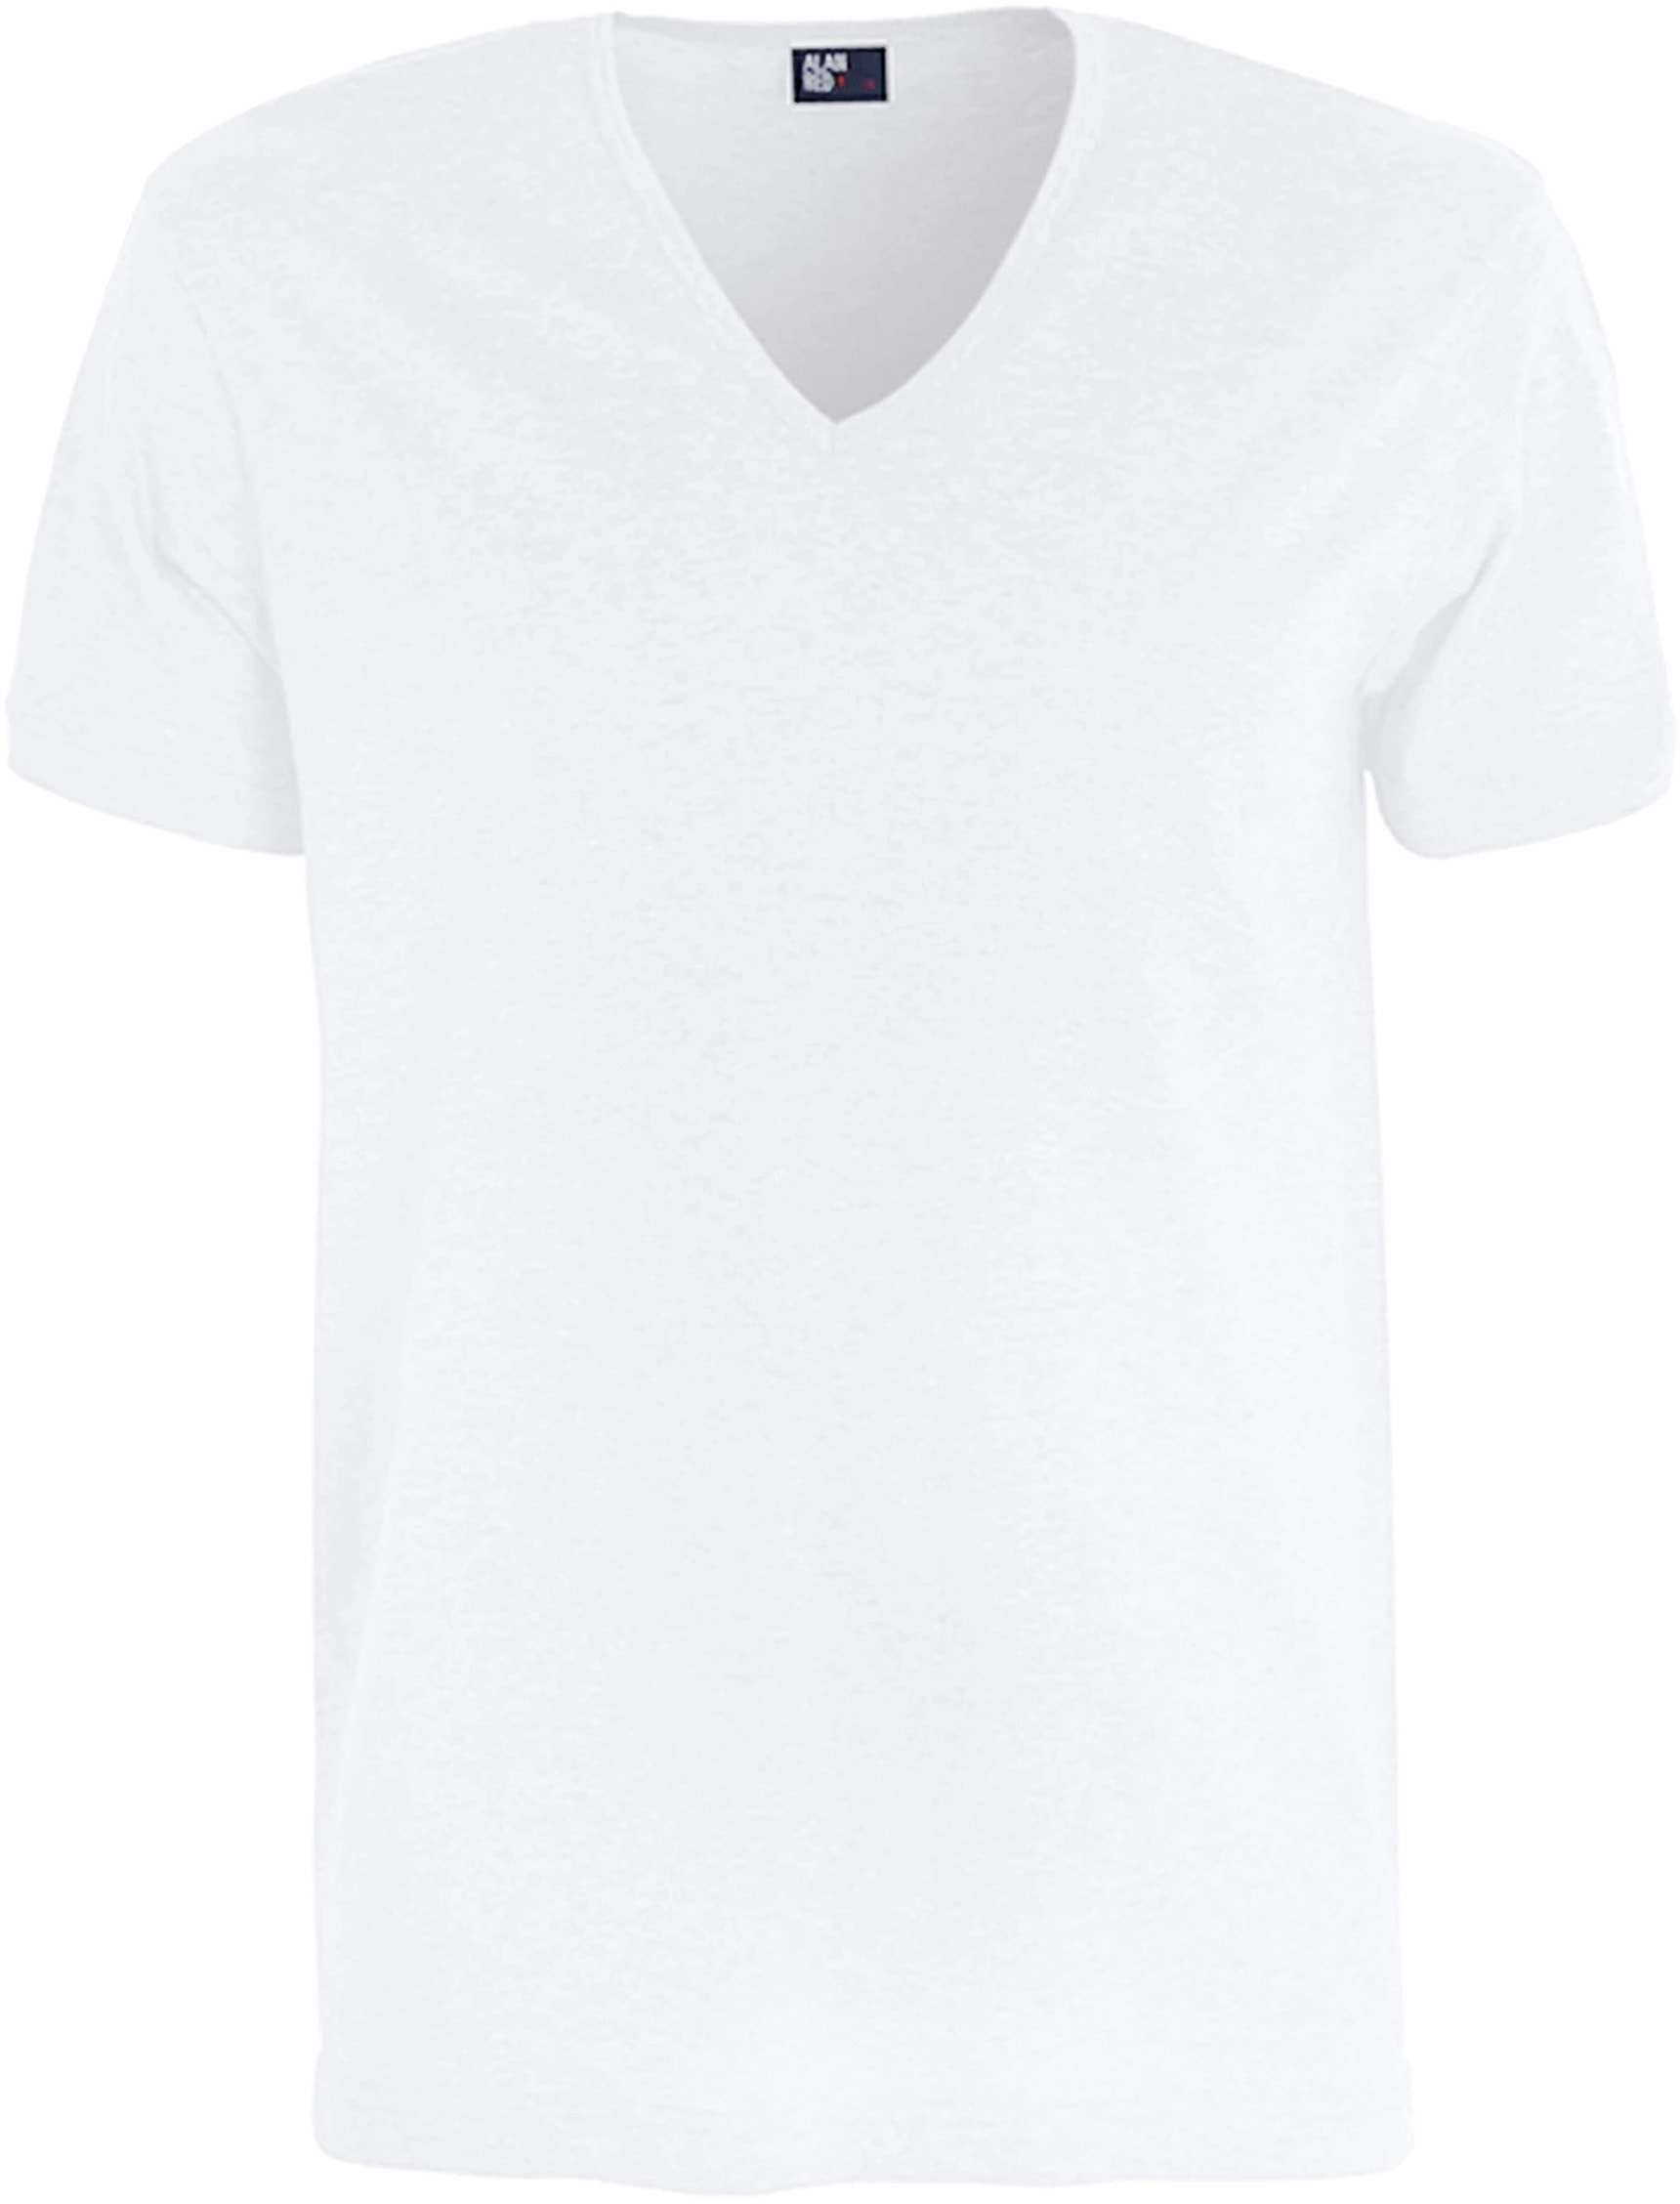 Alan Red Verner T-shirt Deep V-Neck White 1-Pack foto 0